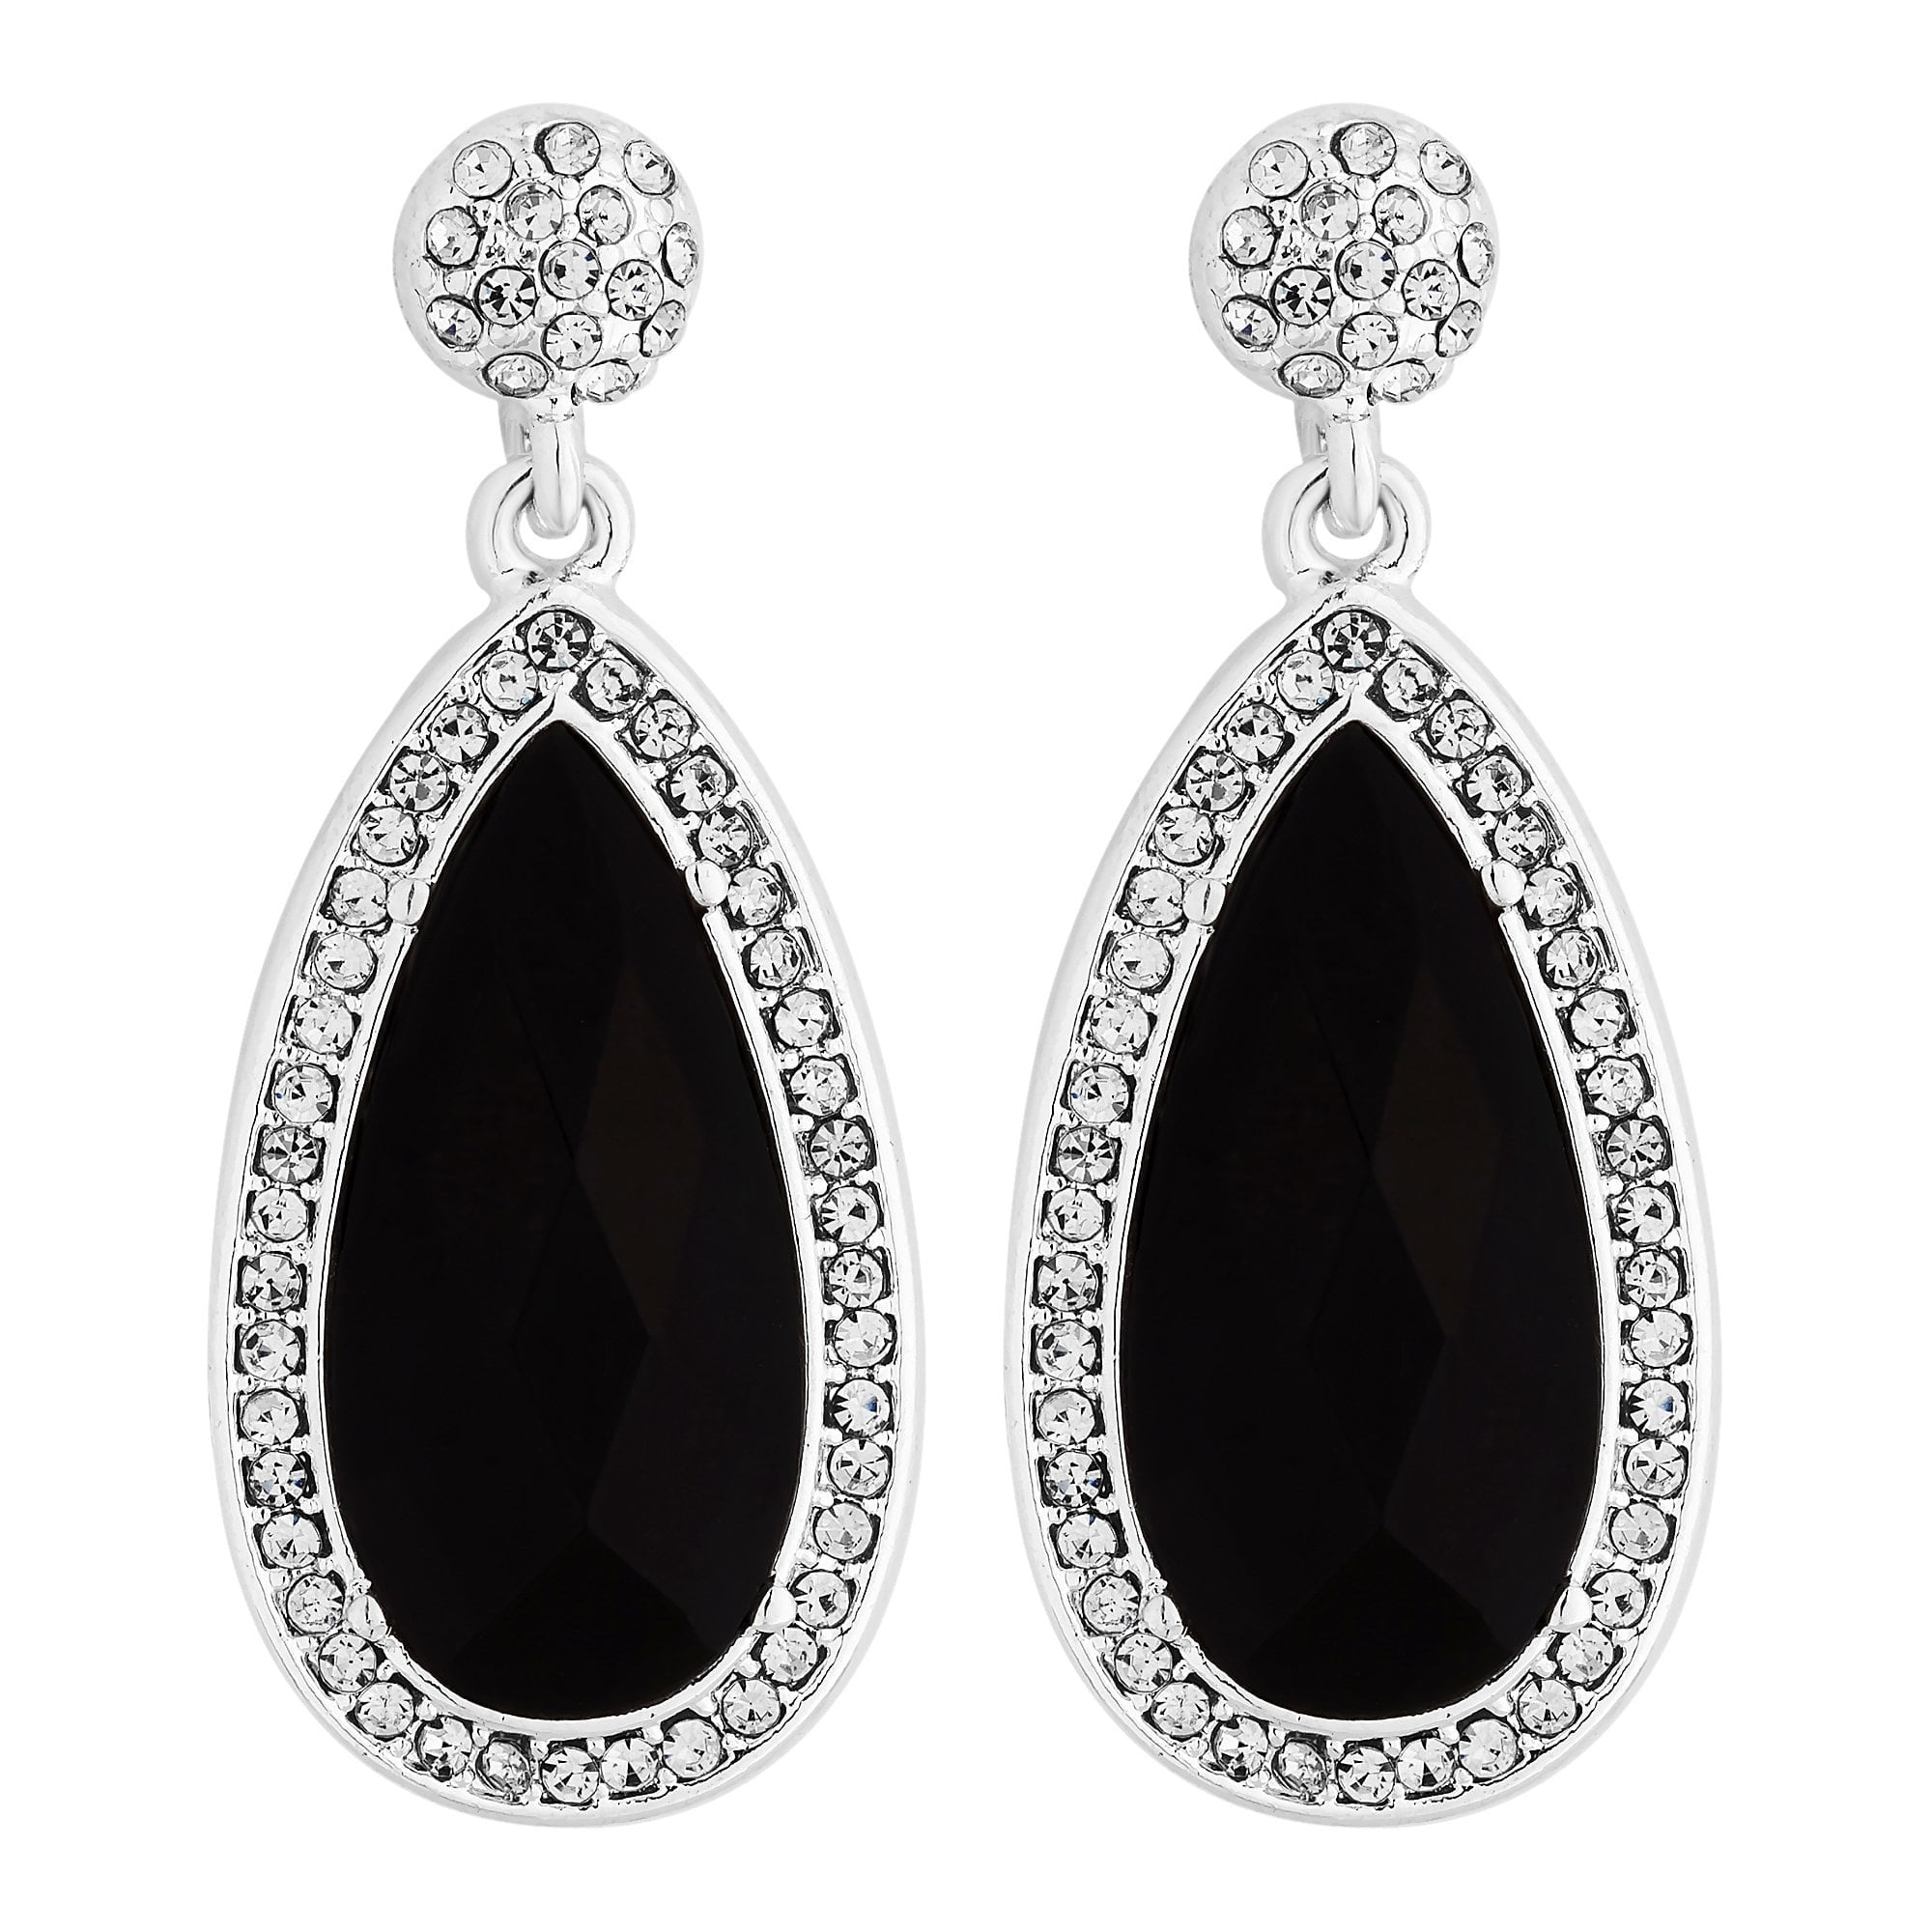 484d4f9903d89 Silver Plated Pave Crystal Black Oval Drop Earrings